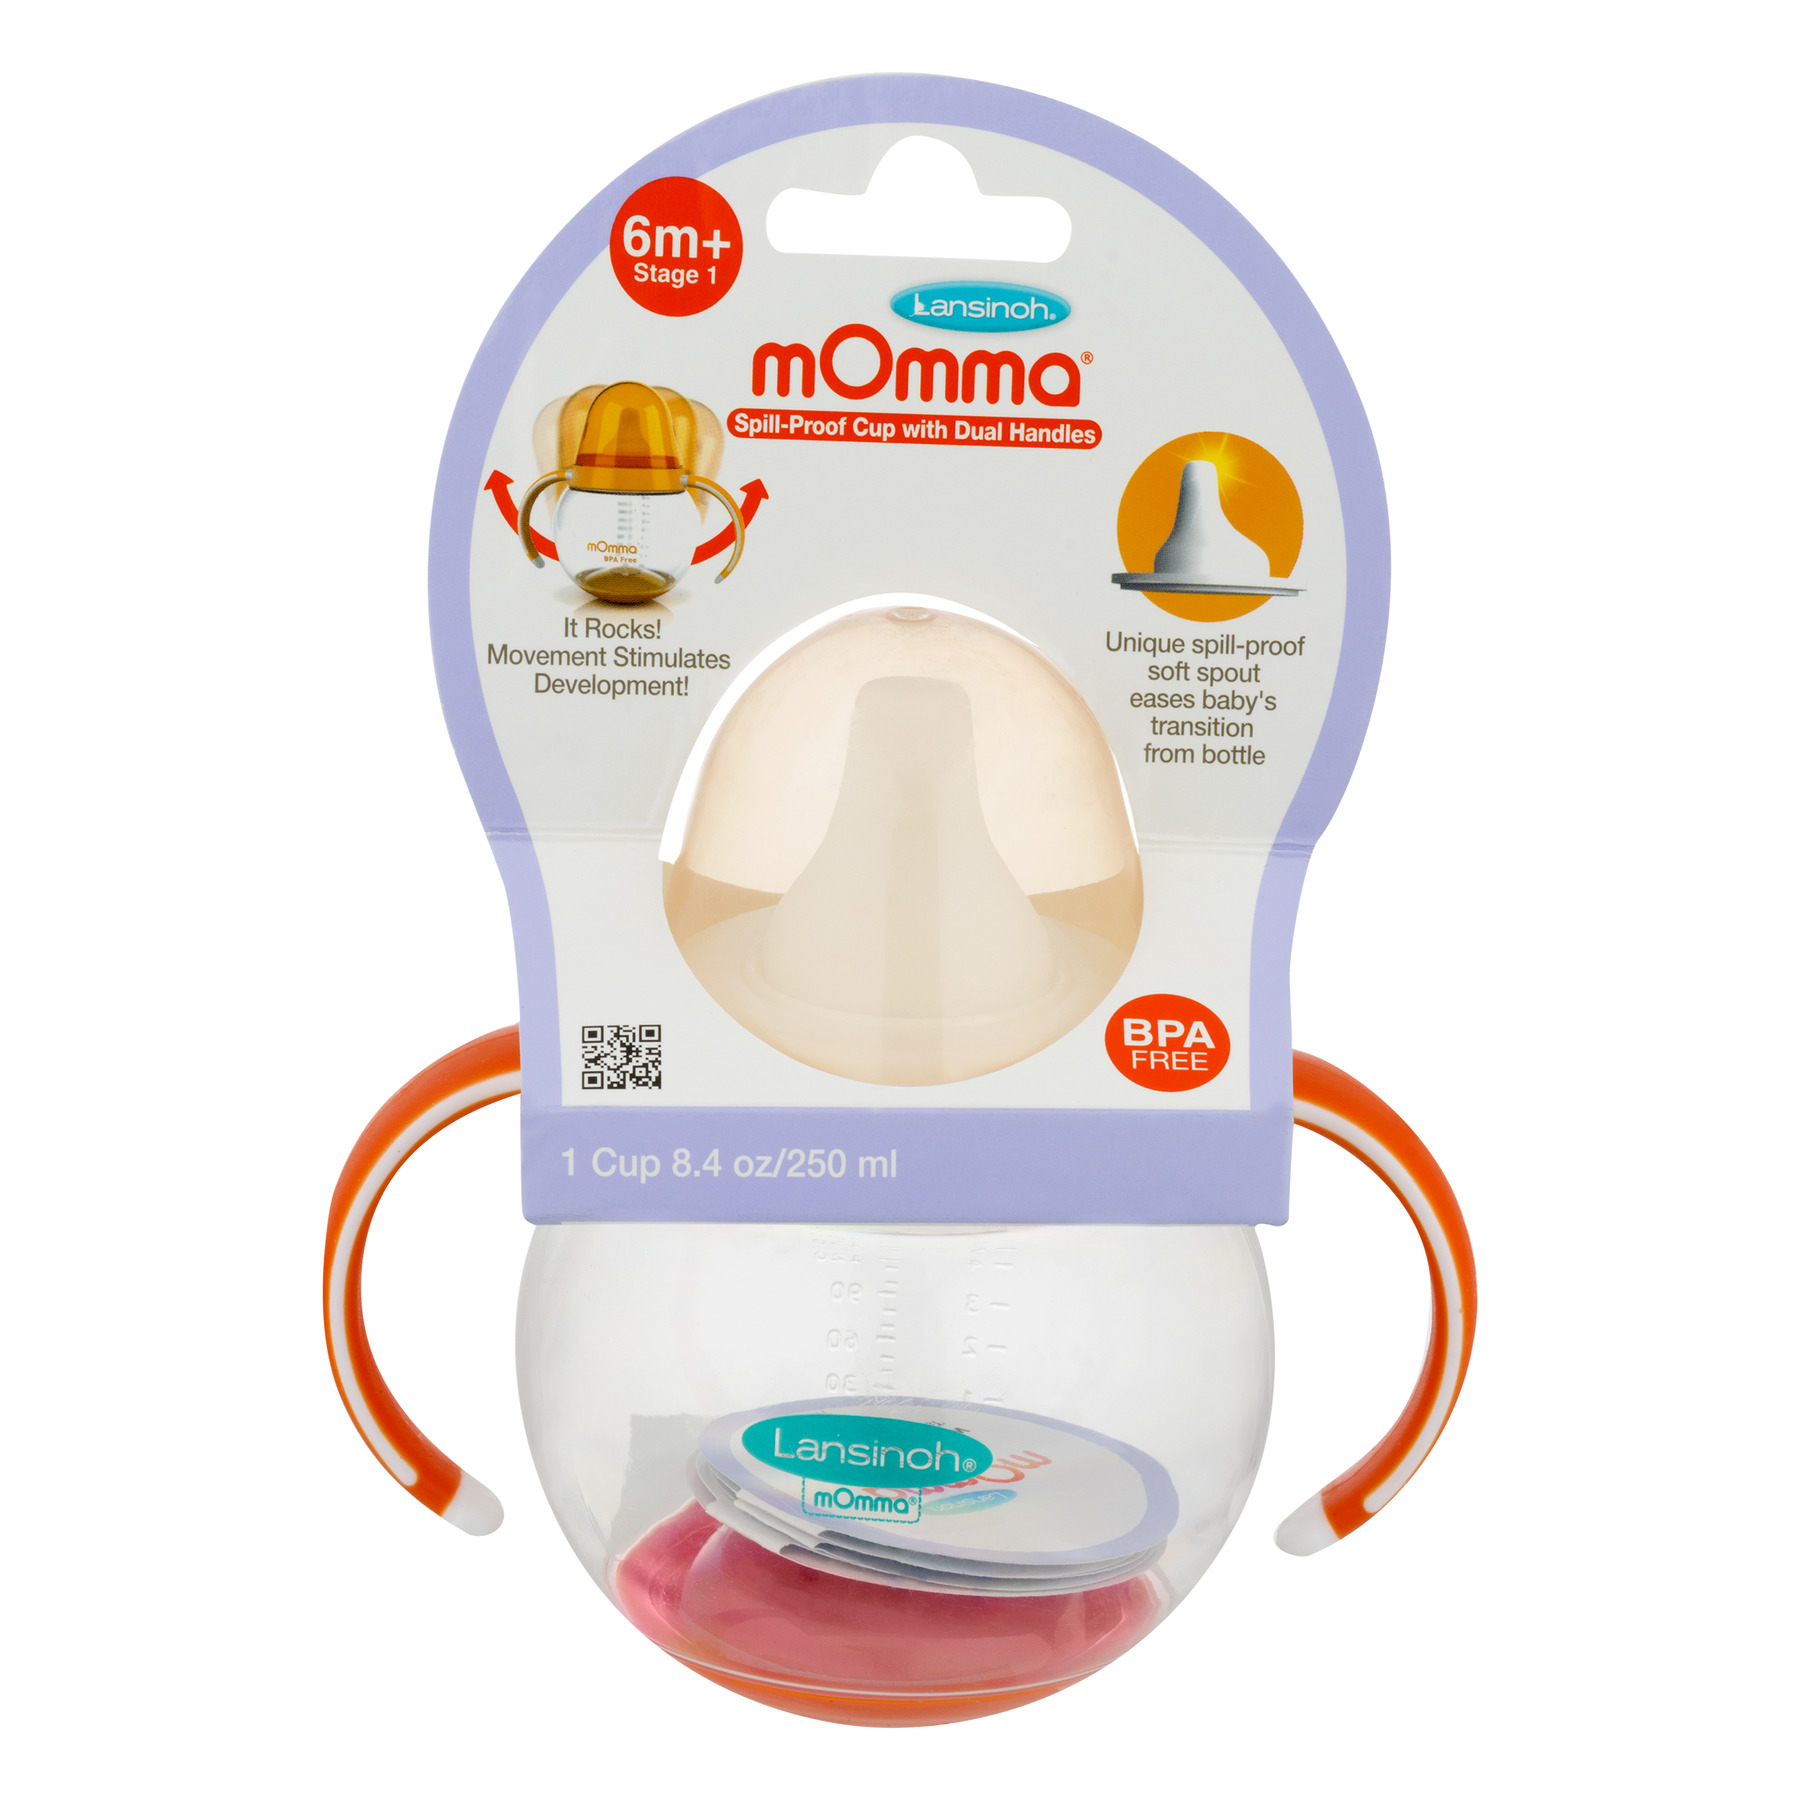 Lansinoh mOmma Stage 1 Soft Spout Sippy Cup